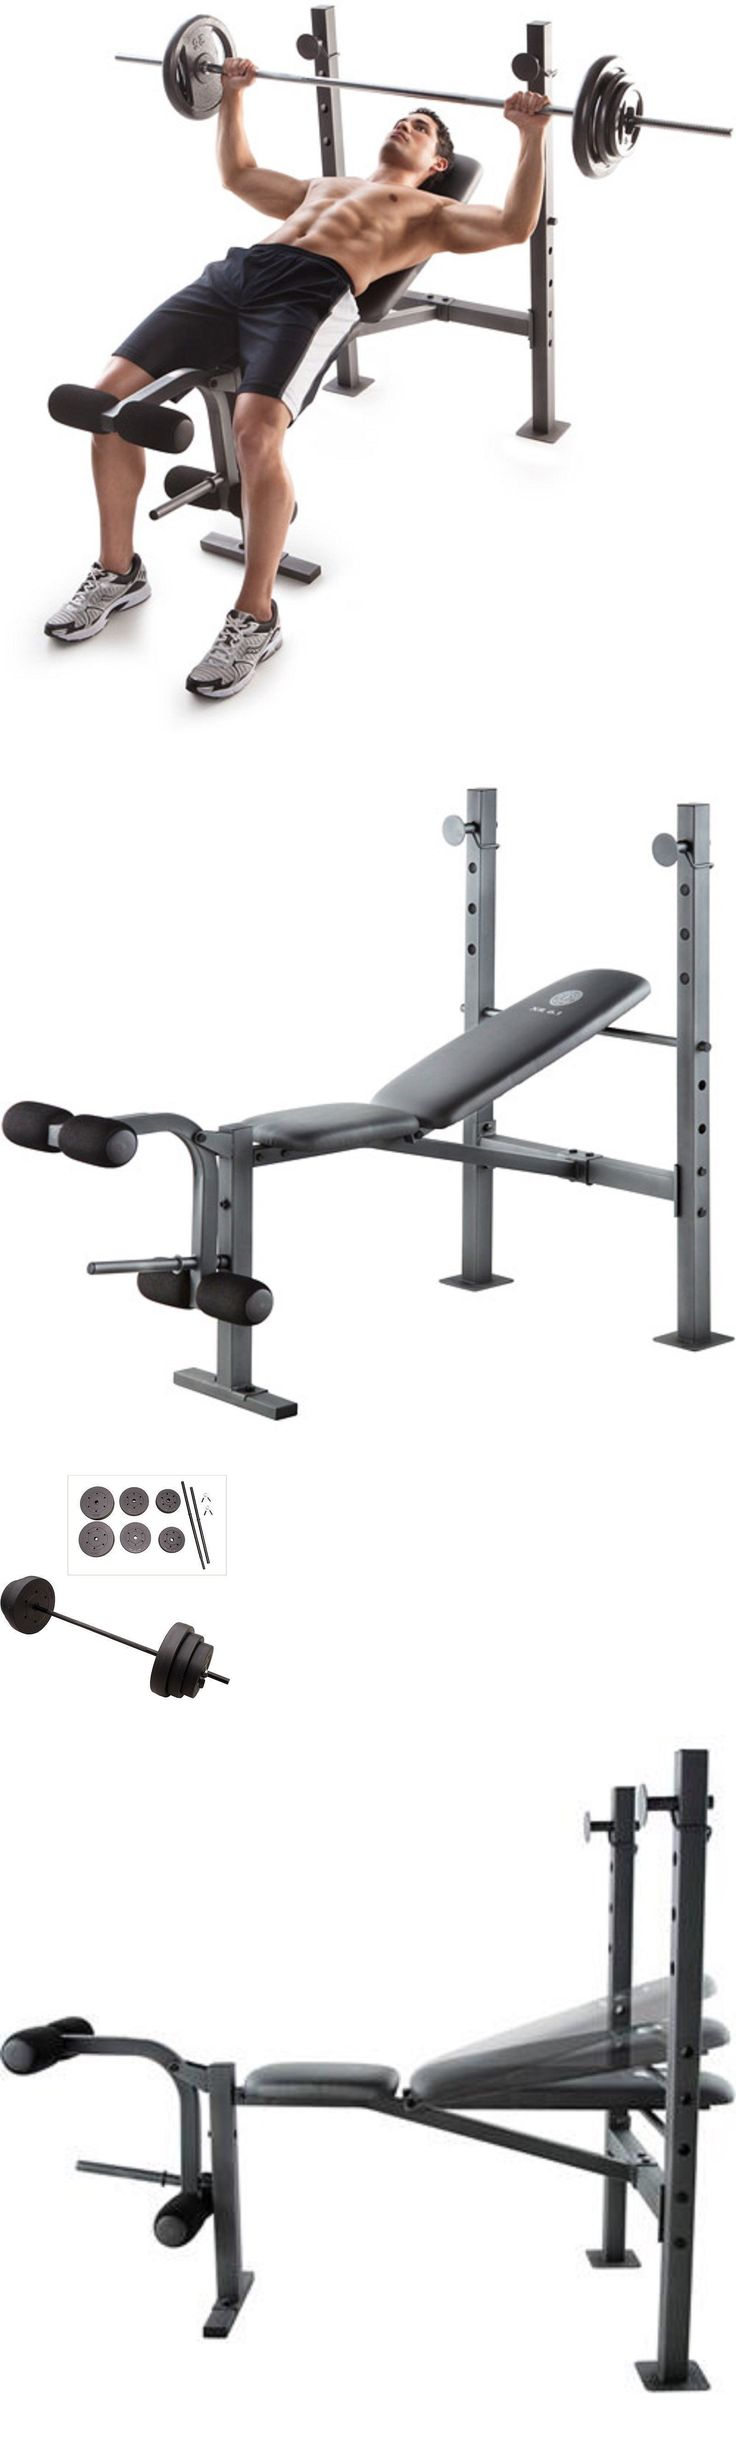 Benches 15281: New 100 Lb Weight Set And Bench Gold Gym Weights Lifting Barbell Exercise Plates -> BUY IT NOW ONLY: $129.88 on eBay!